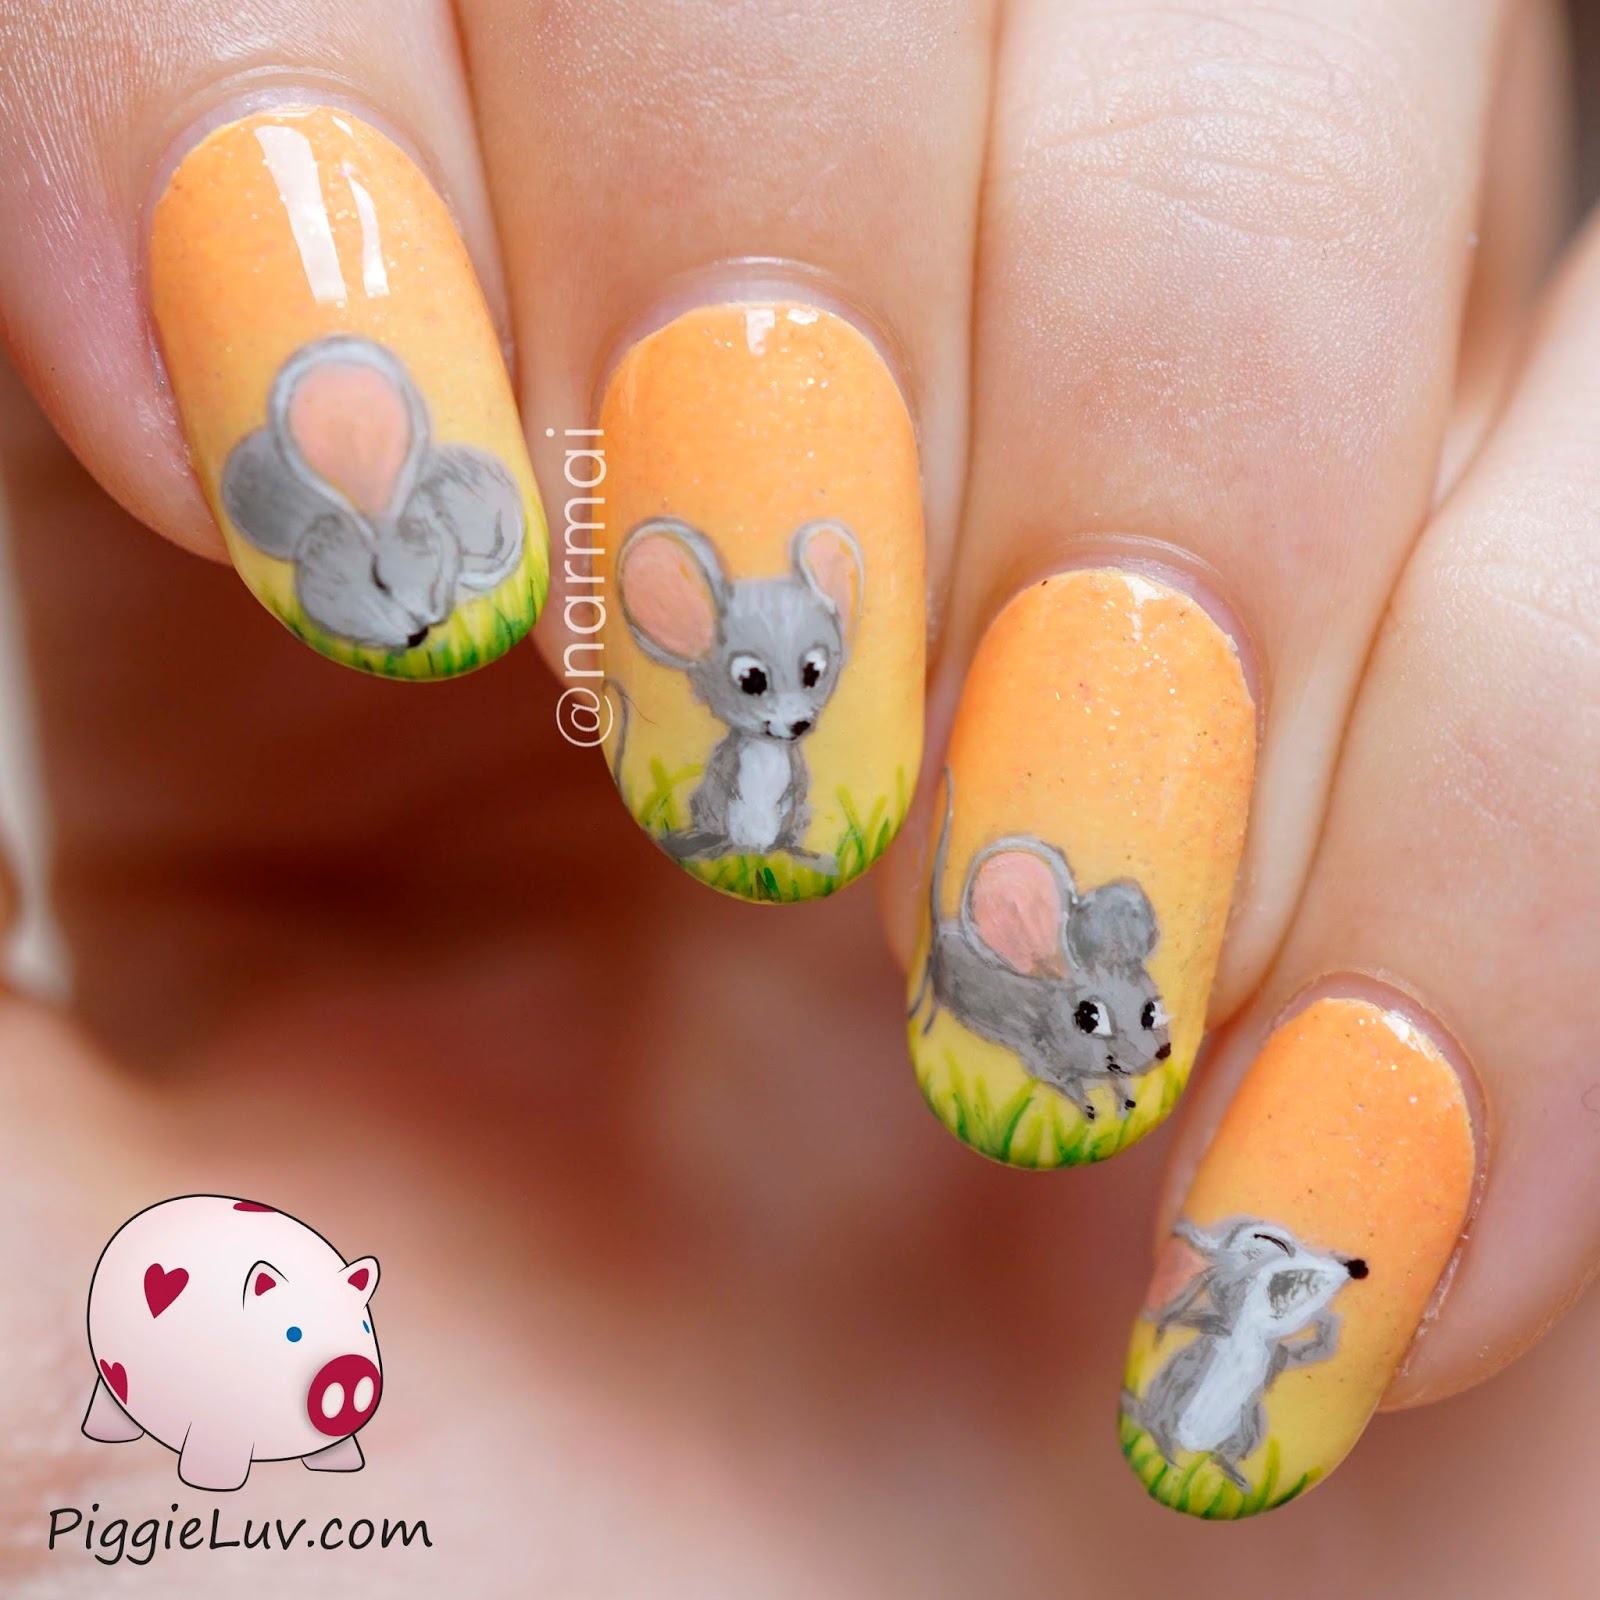 Adorable Nail Designs: PiggieLuv: Freehand Adorable Mouse Nail Art